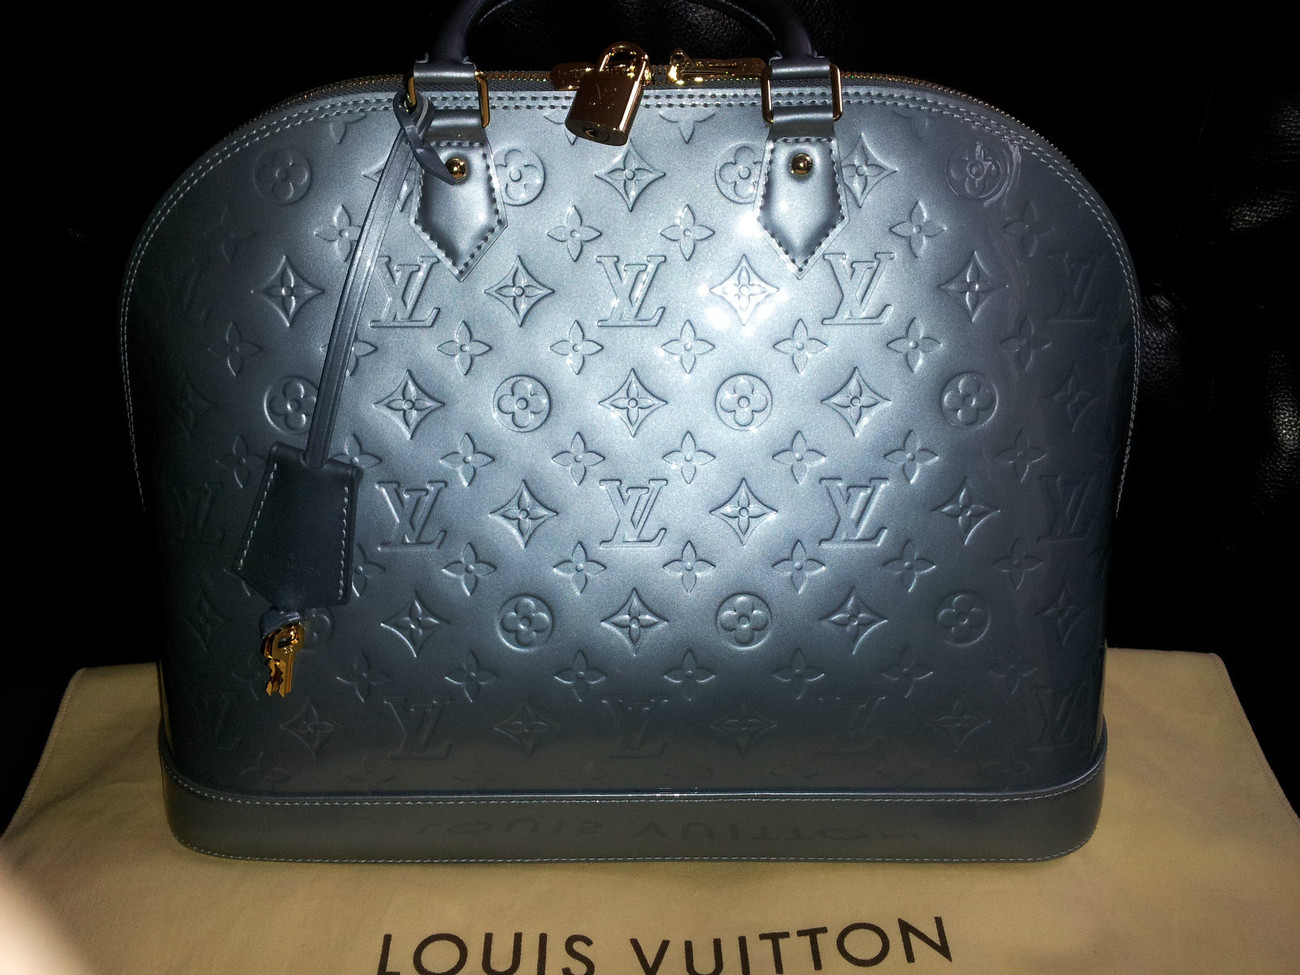 LOUIS VUITTON VERNIS LEATHER ALMA MM HANDBAG BLEU GIVRE - BRAND NEW!!